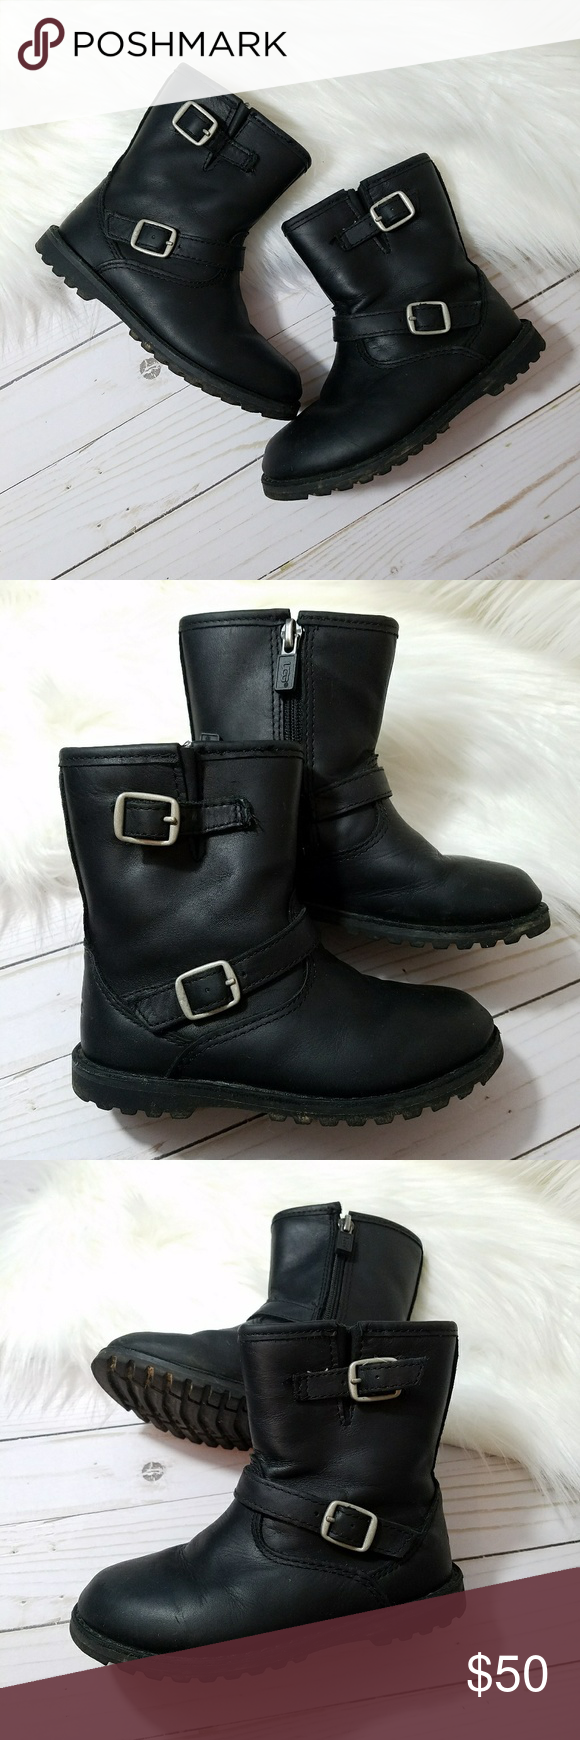 f8645ca9383 Toddler ugg harwell boots Toddler size 9 Black leather biker style ...